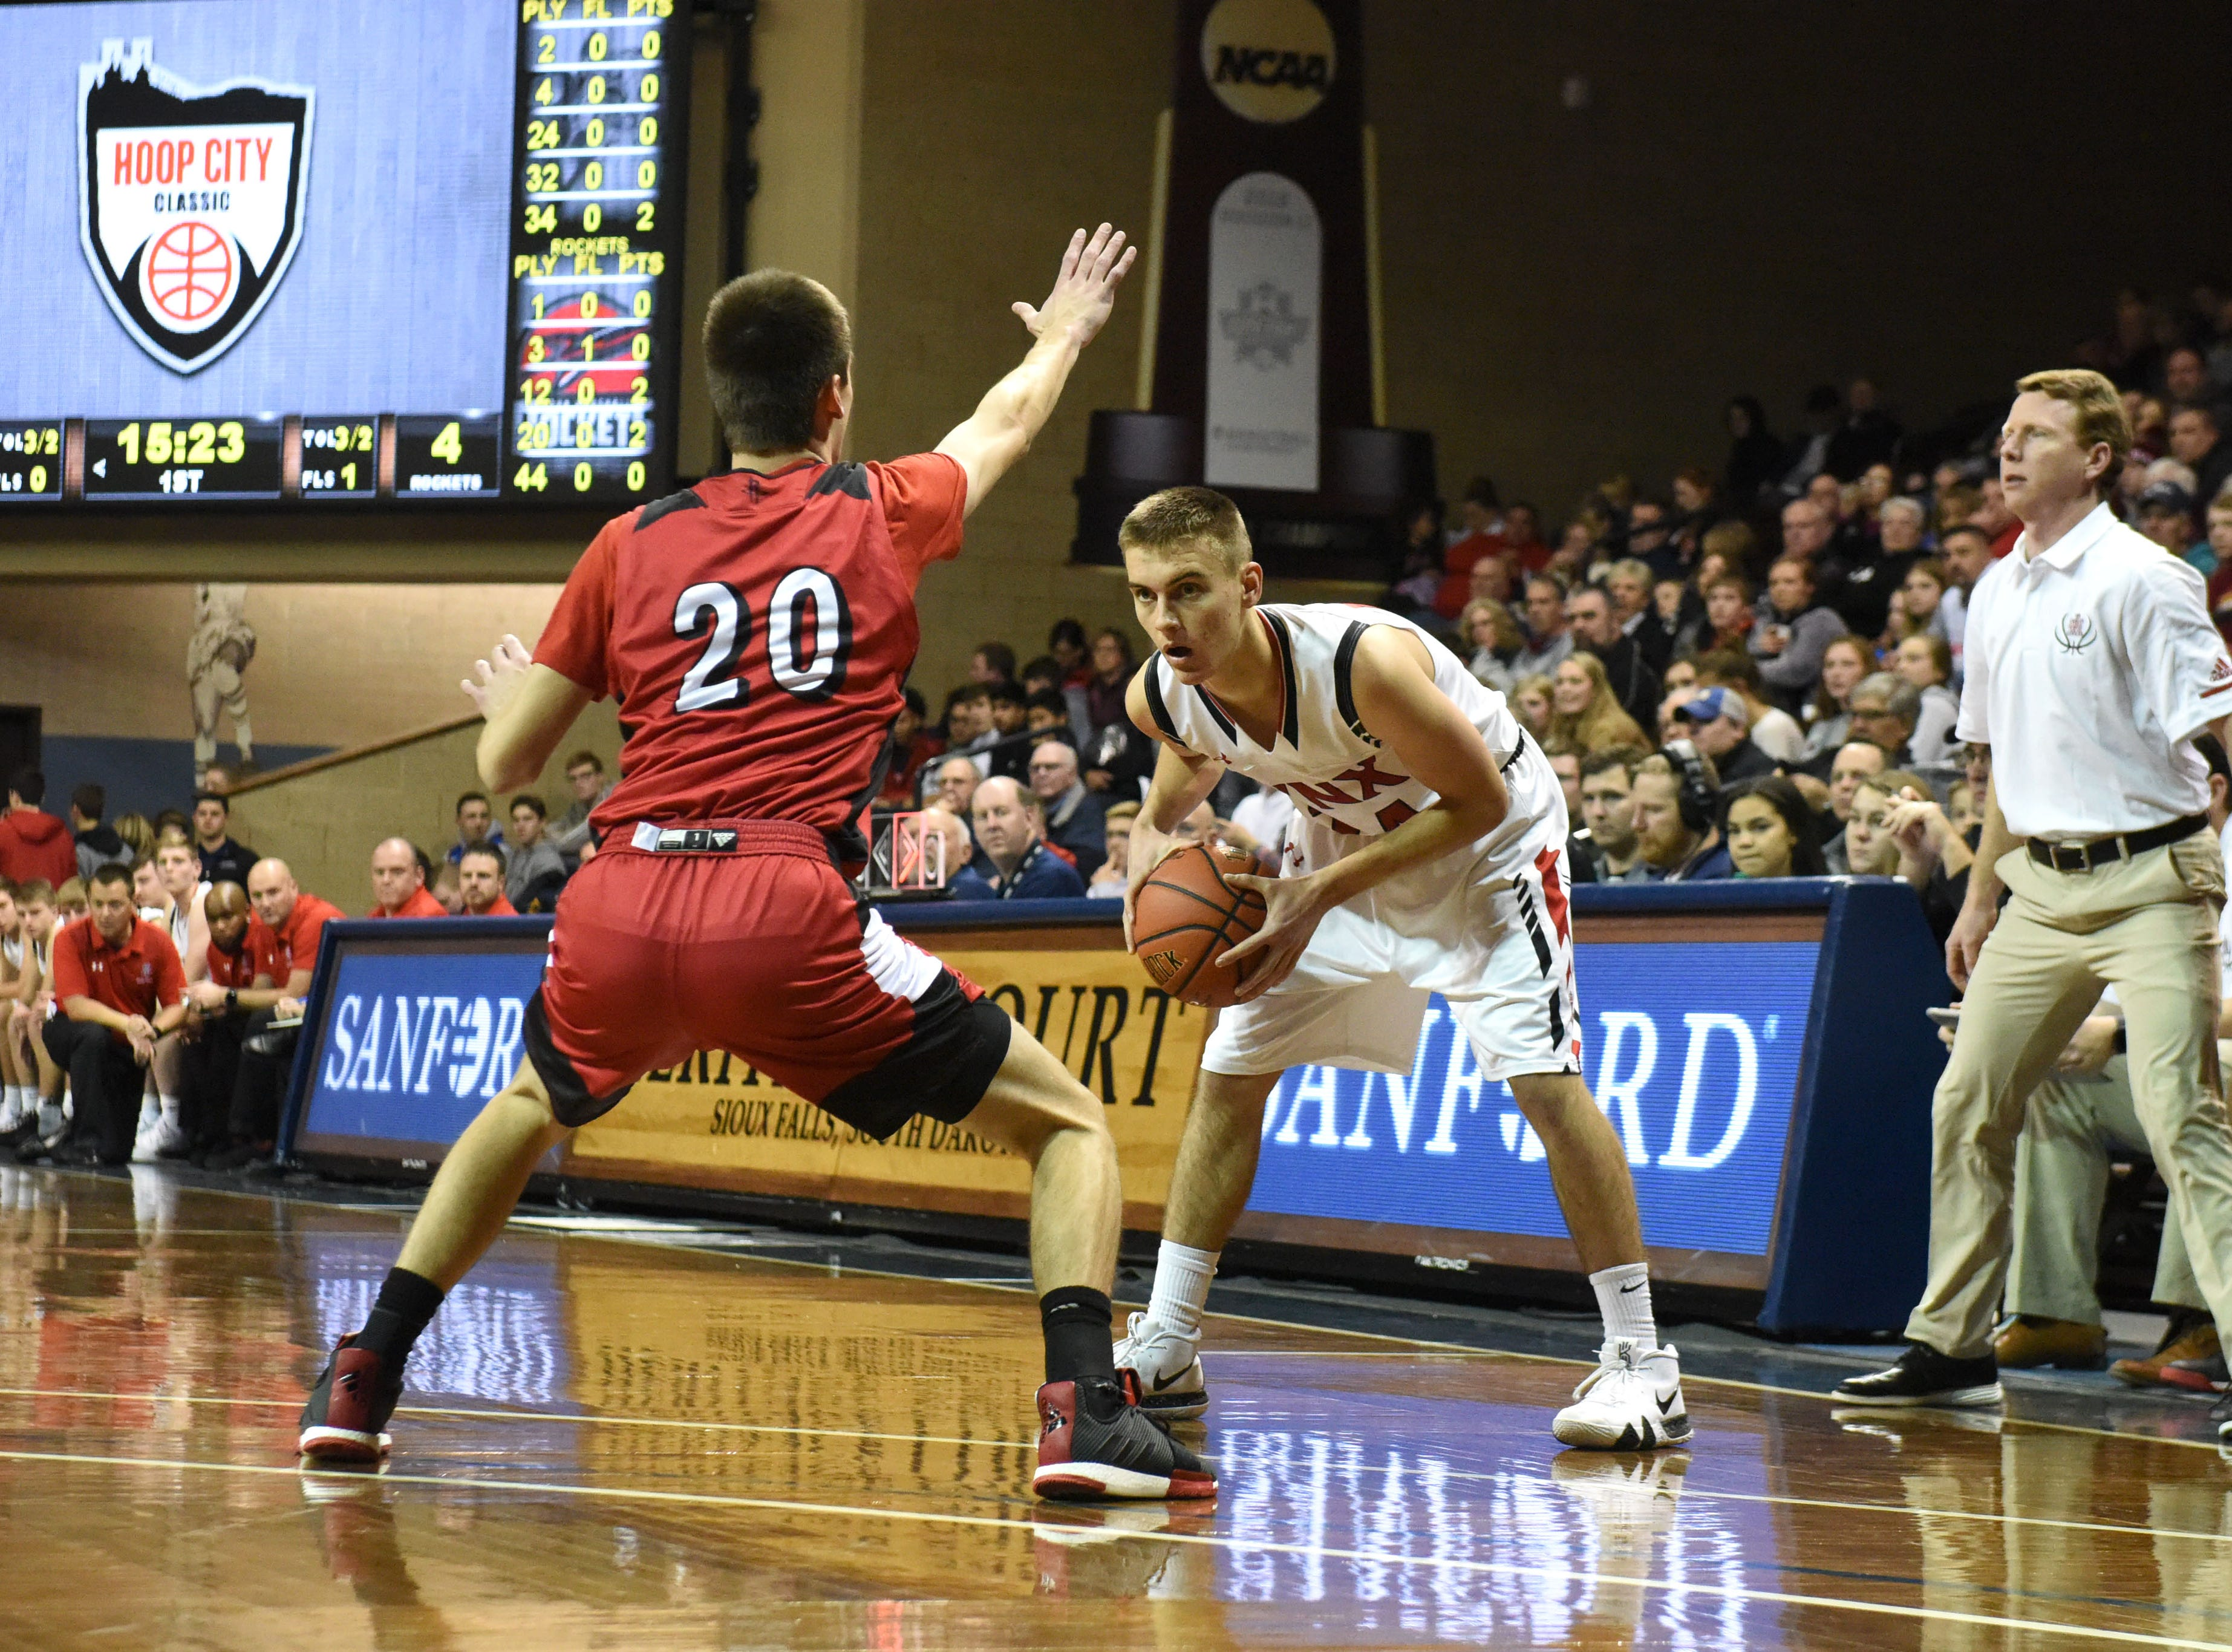 Brandon Valley's Evan Talcott (24) looks to pass the ball during a game against John Marshall at the Hoop City Classic at the Sanford Pentagon in Sioux Falls, S.D., Saturday, Dec. 29, 2018.